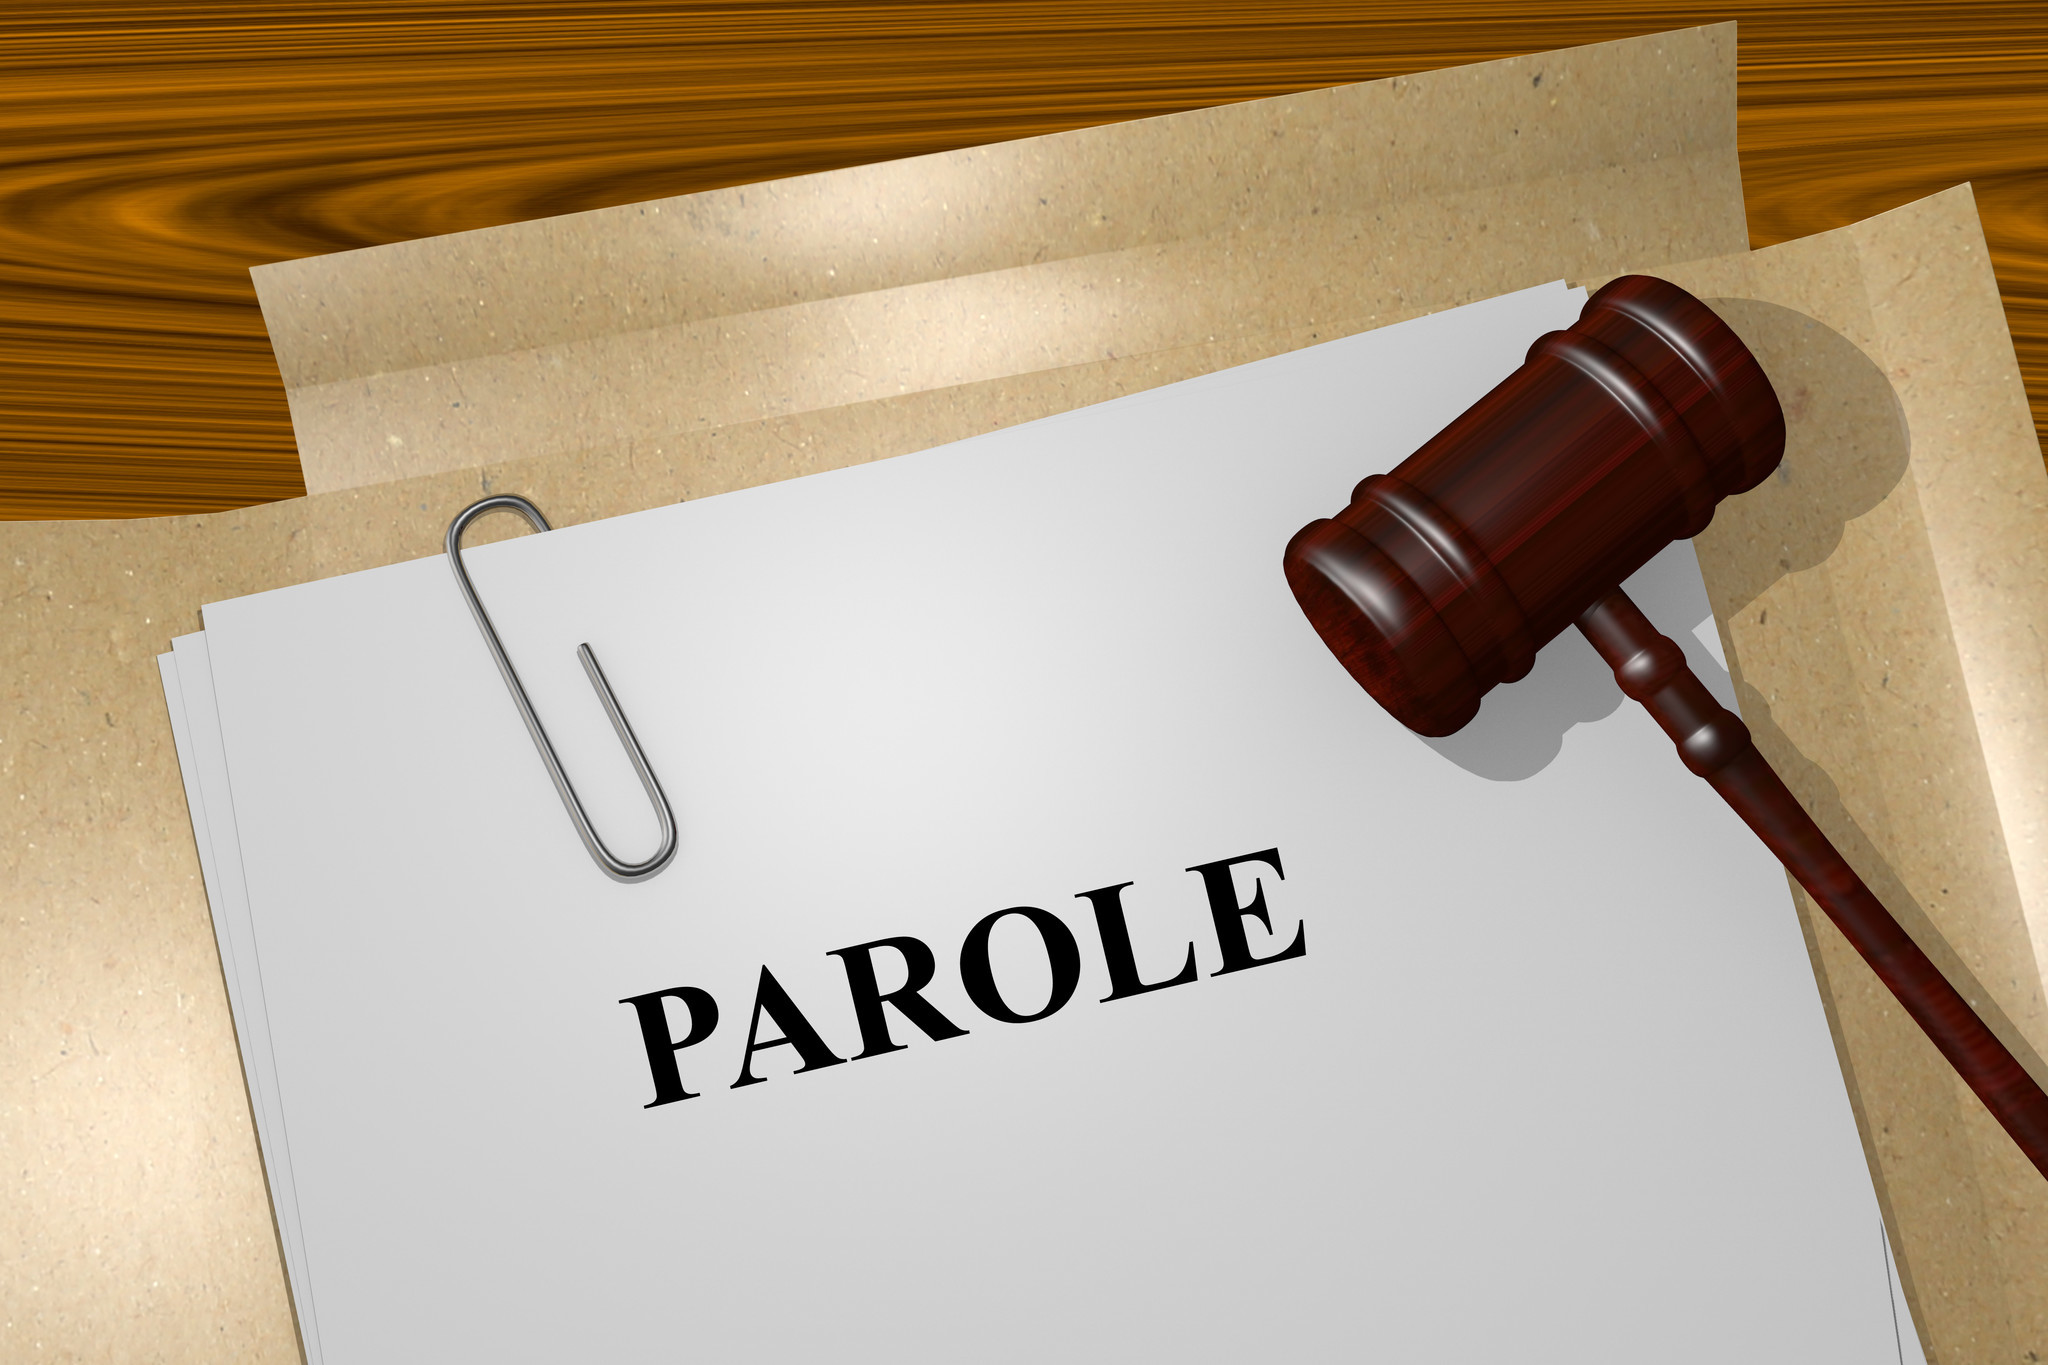 This is the moment to fix parole: Coronavirus puts New York's overly punitive system front and center